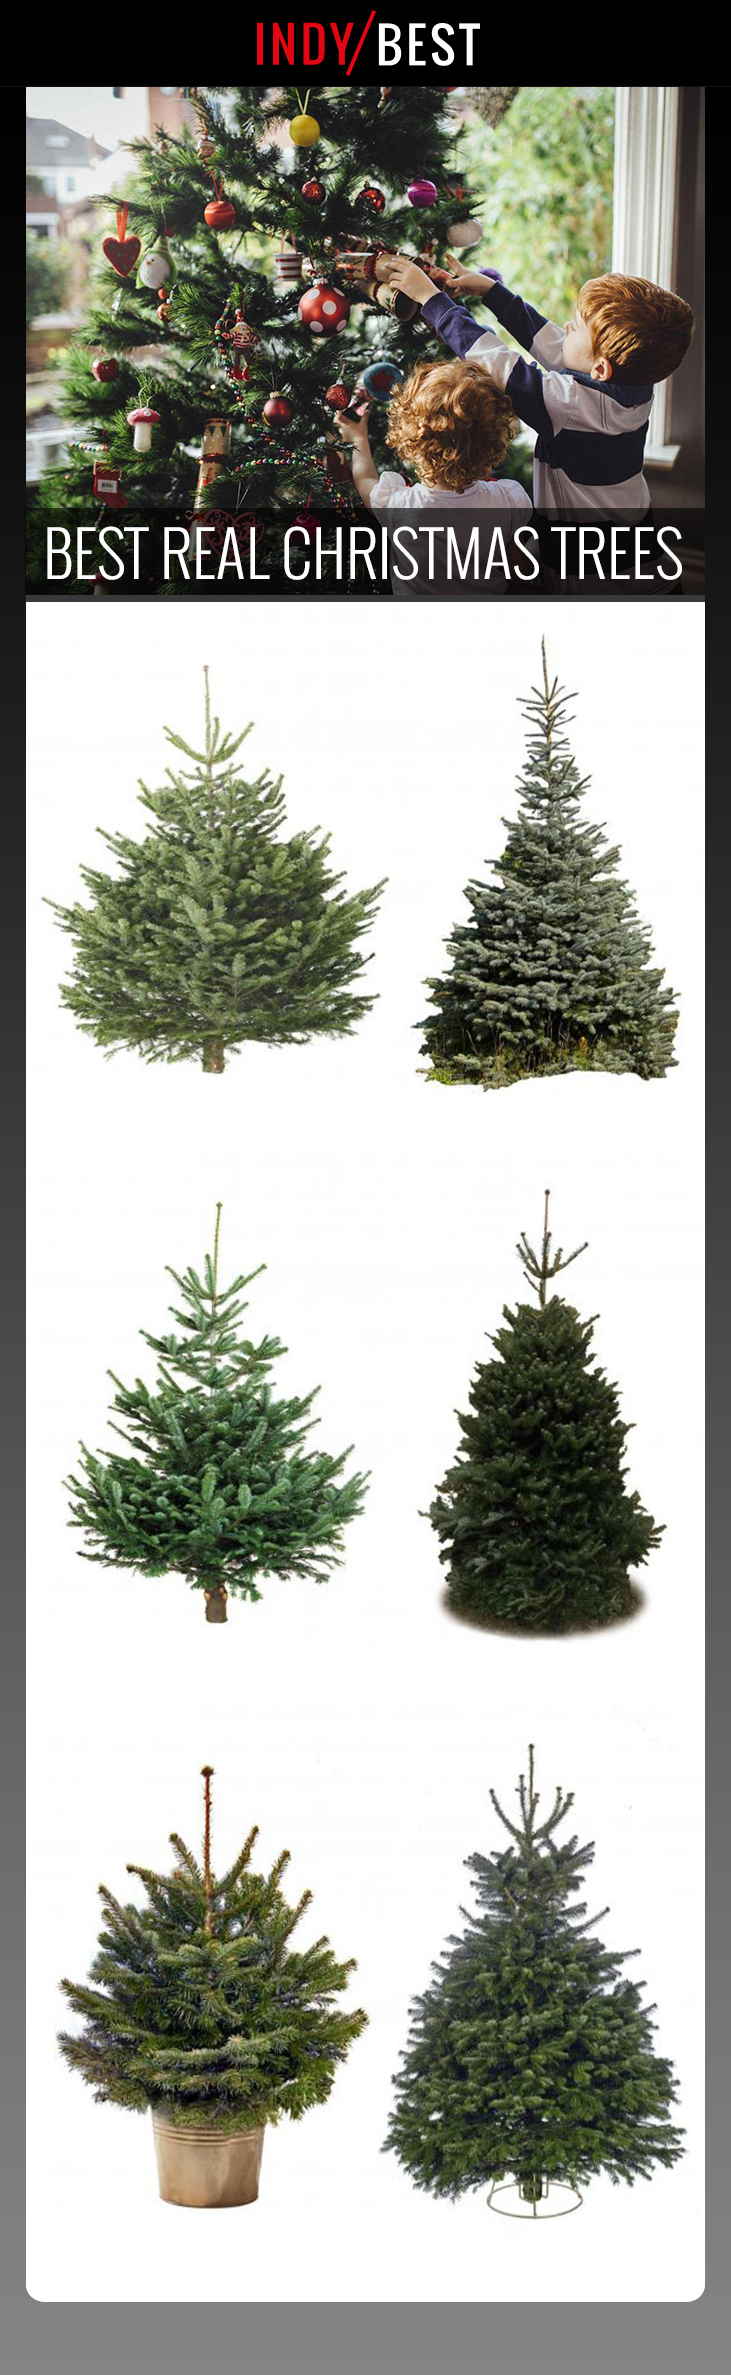 11 best real Christmas trees that have the festive smell